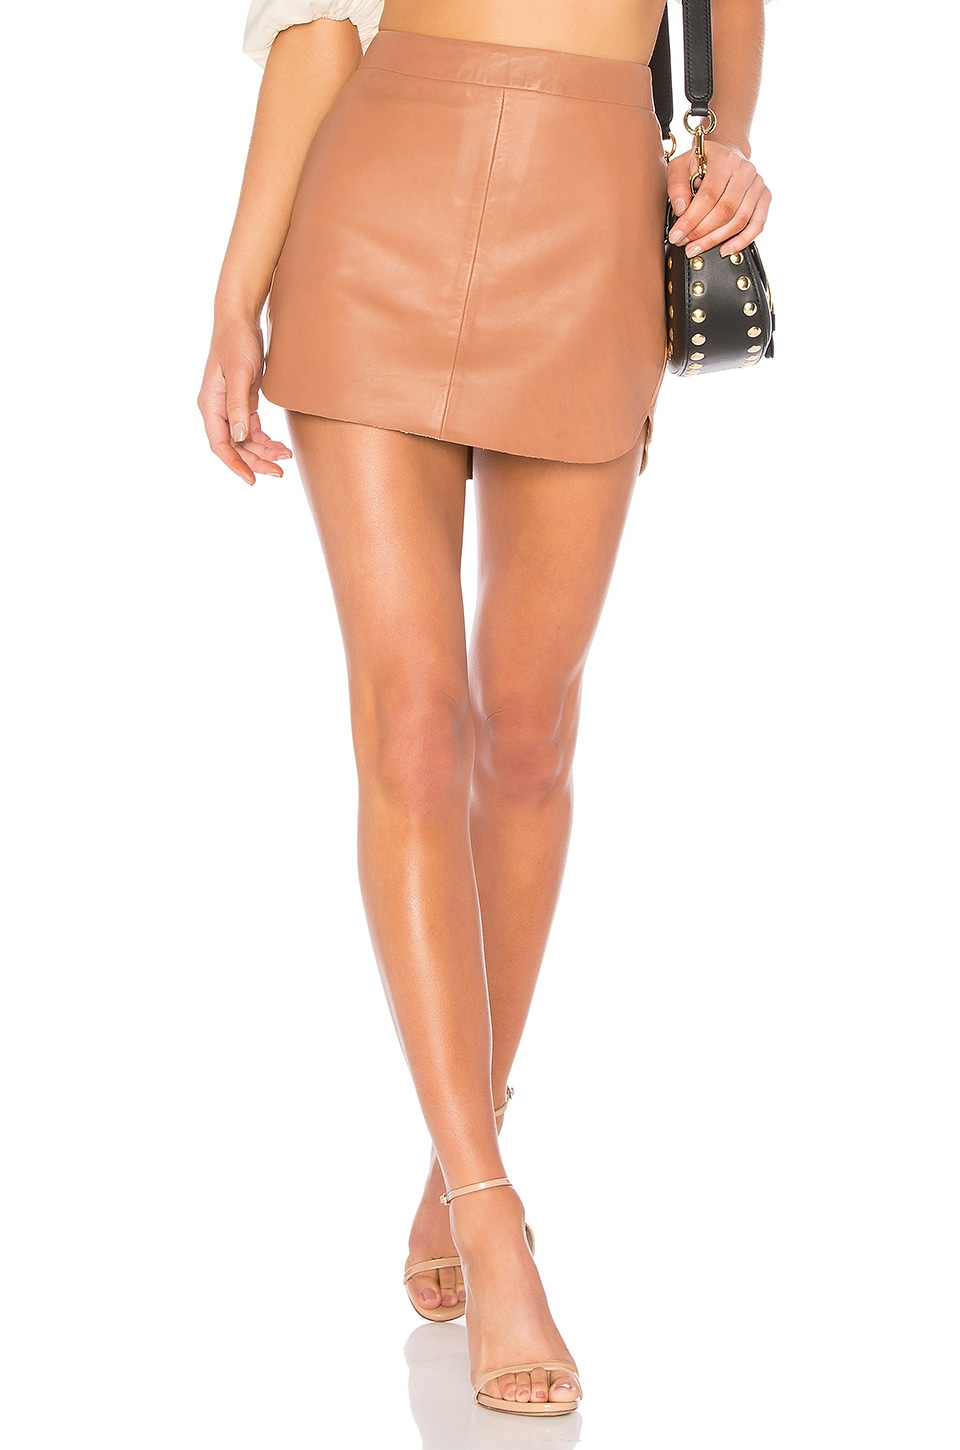 Karina Grimaldi Jacob Leather Skirt in Carmel